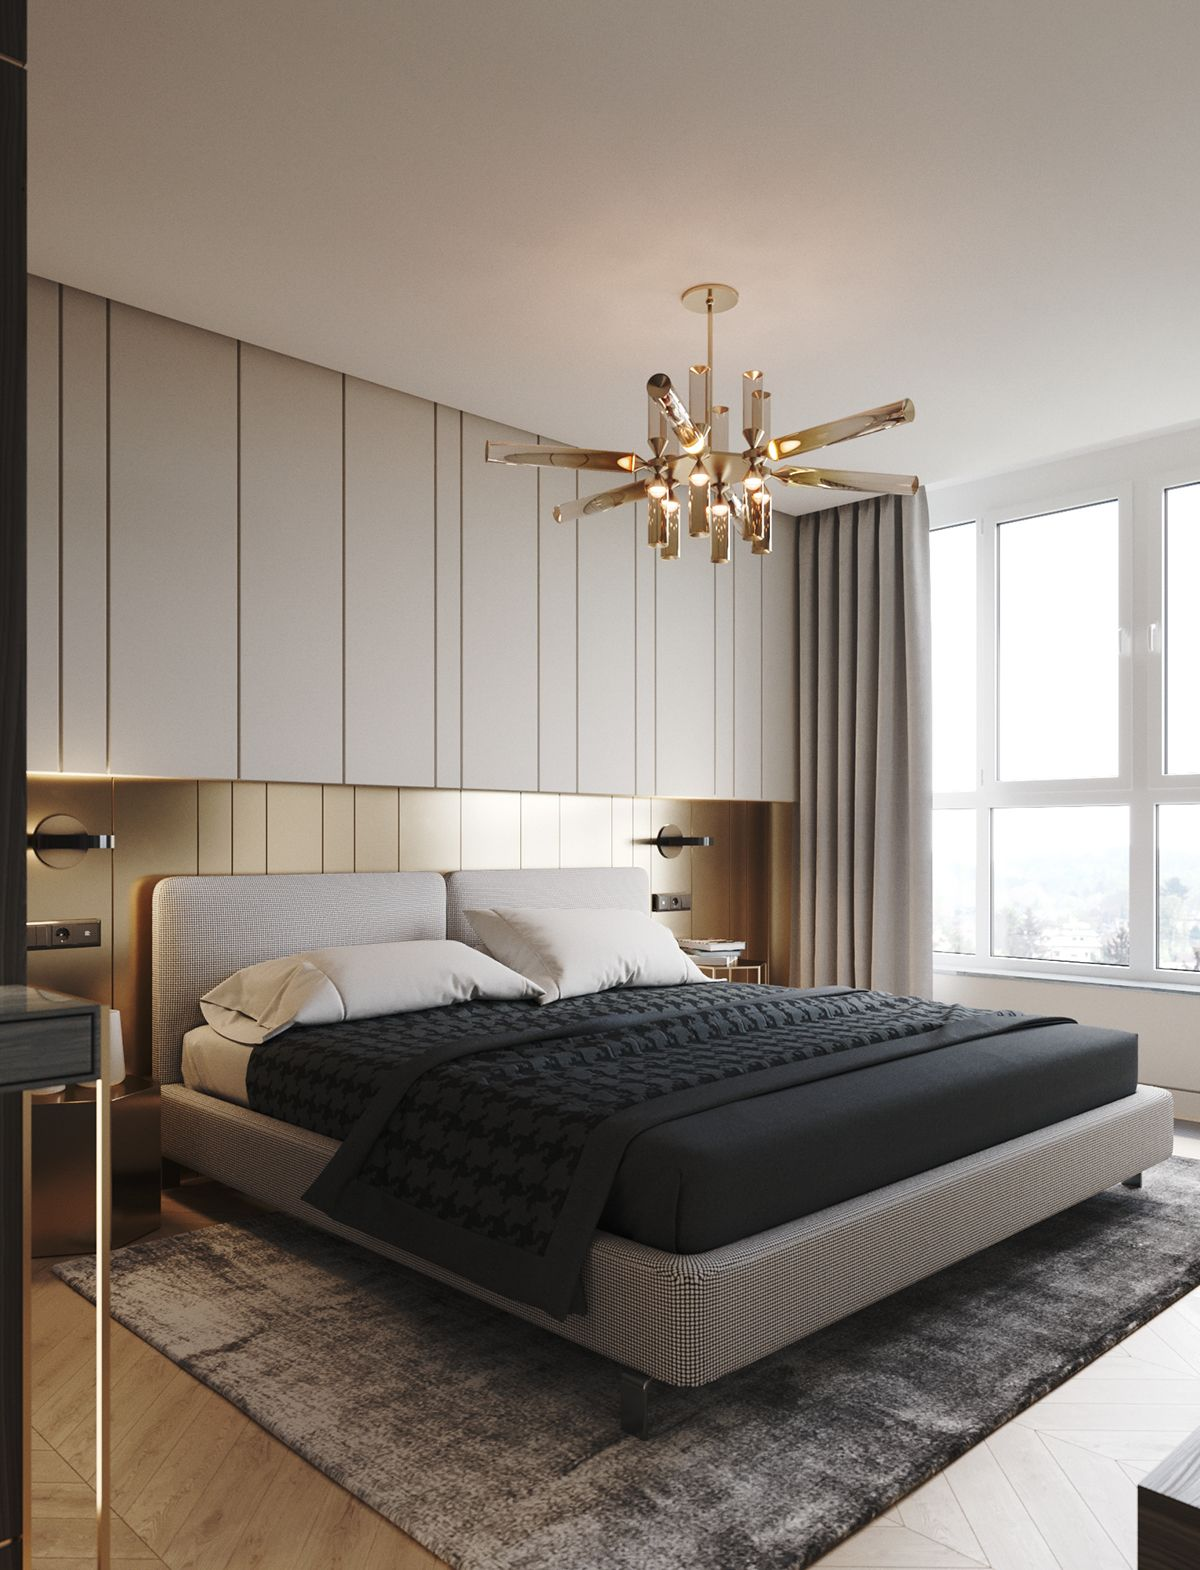 Contemporary Hotel Rooms: Apartment In Onyx Colours On Behance